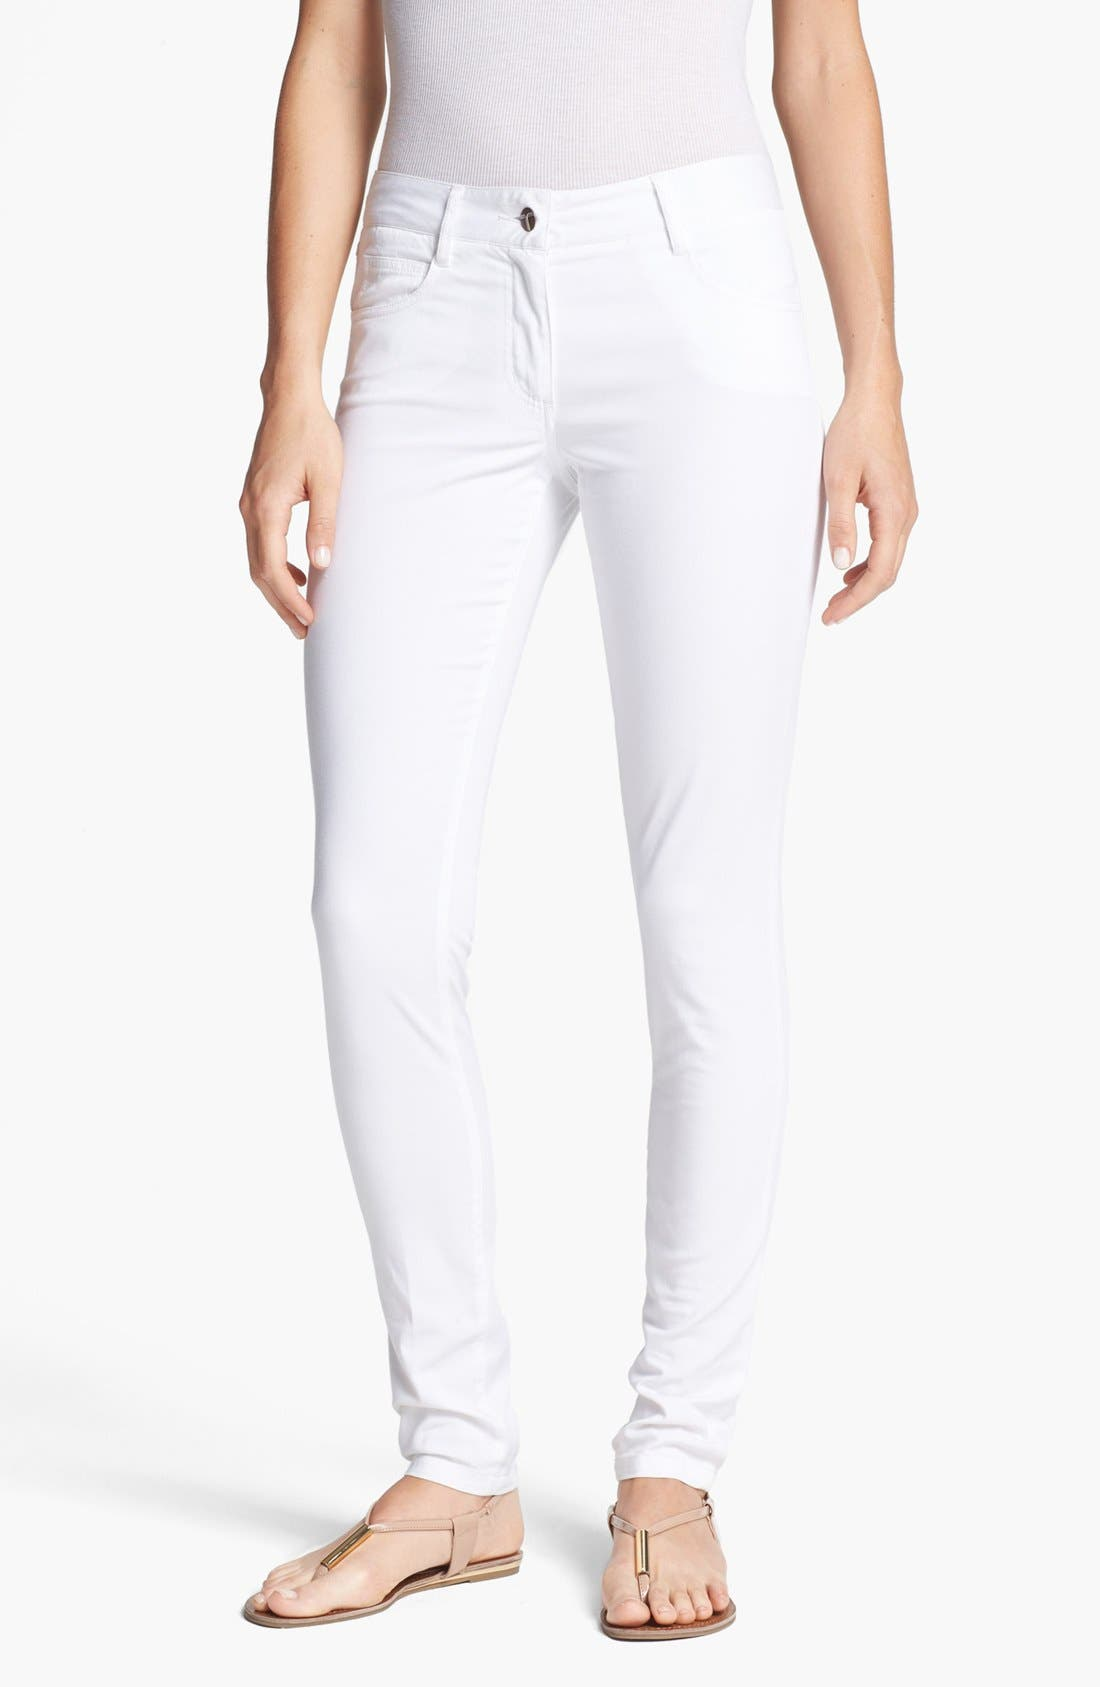 Alternate Image 1 Selected - Trina Turk 'Suki' Skinny Stretch Jeans